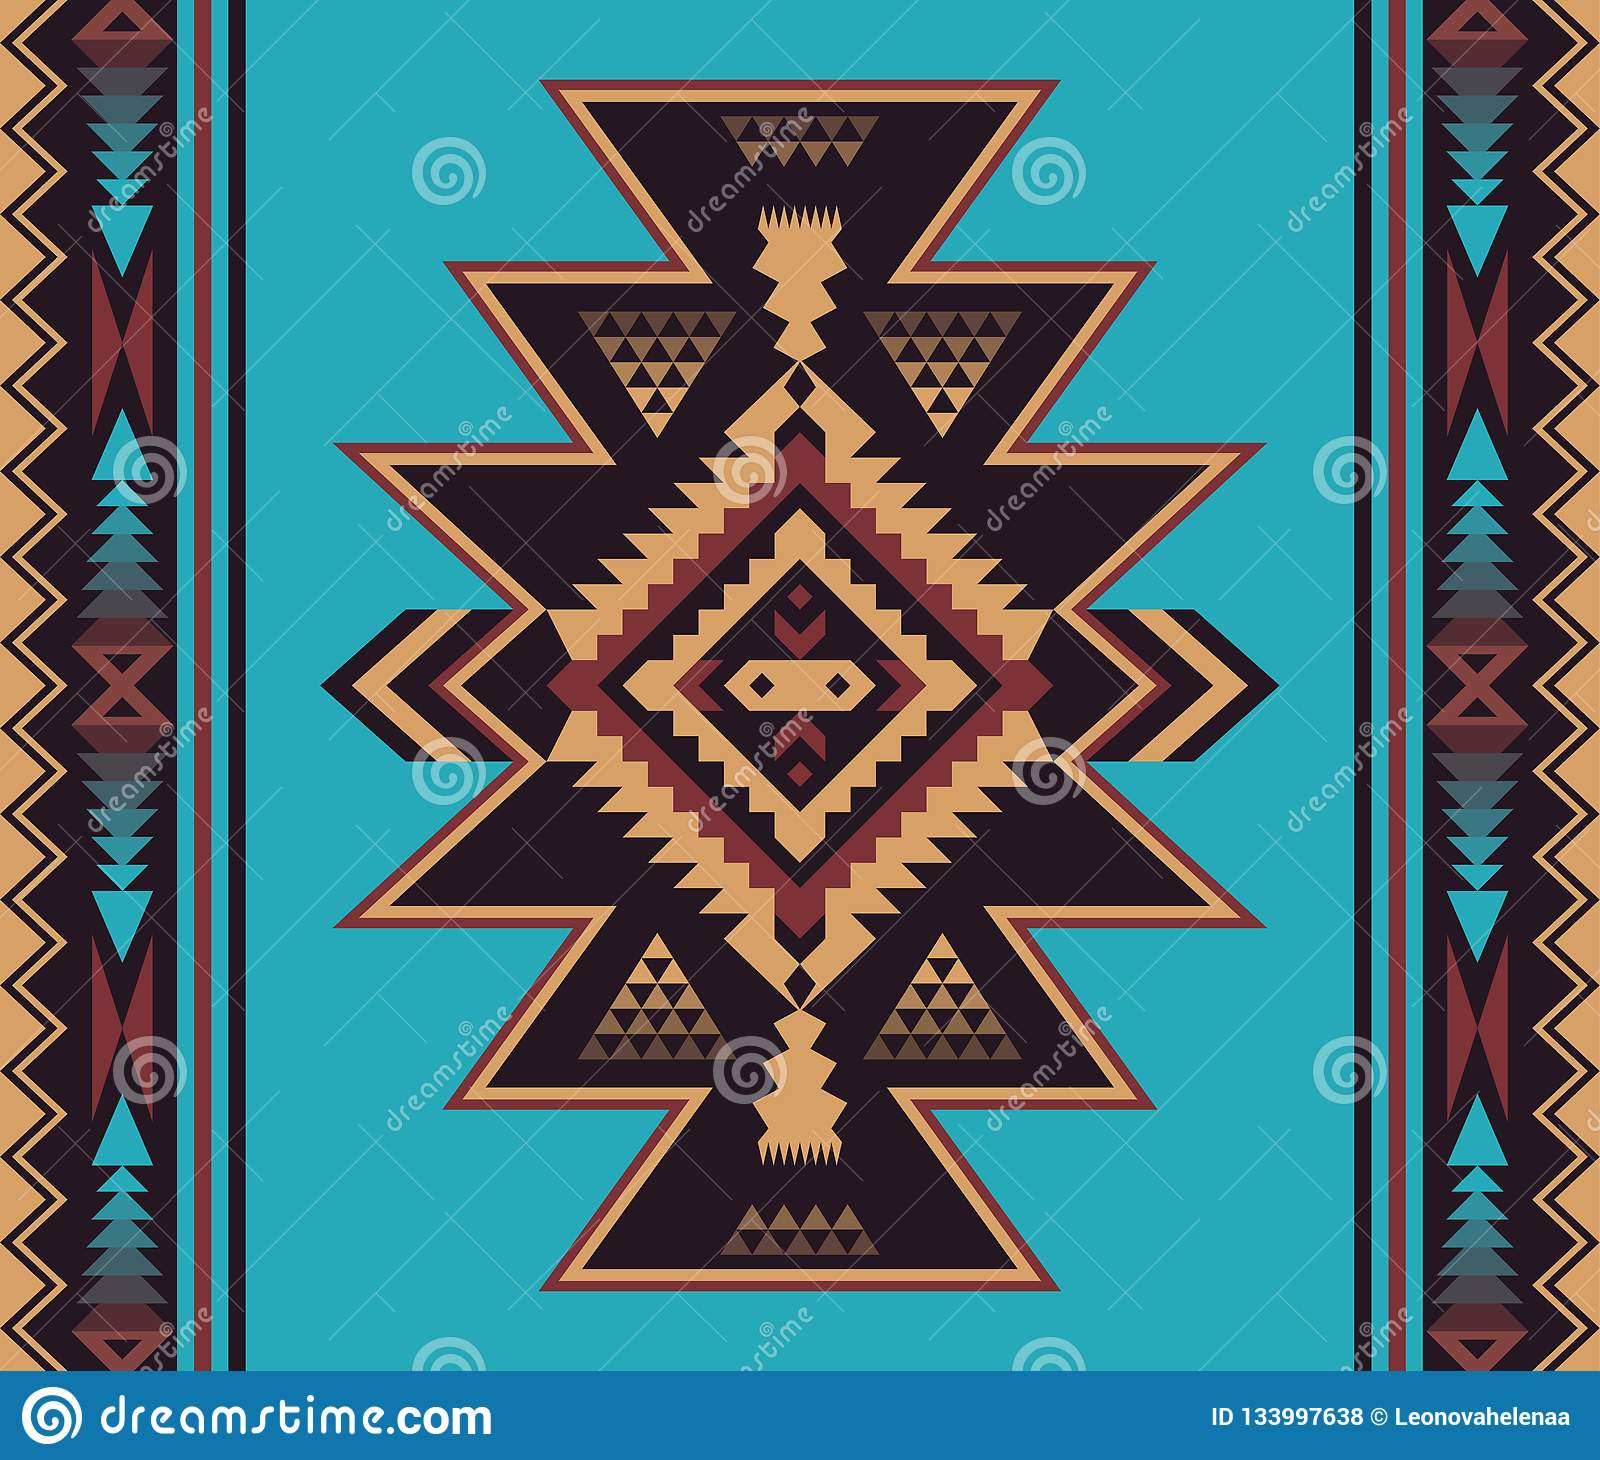 Native Southwest American Indian Aztec Navajo Seamless